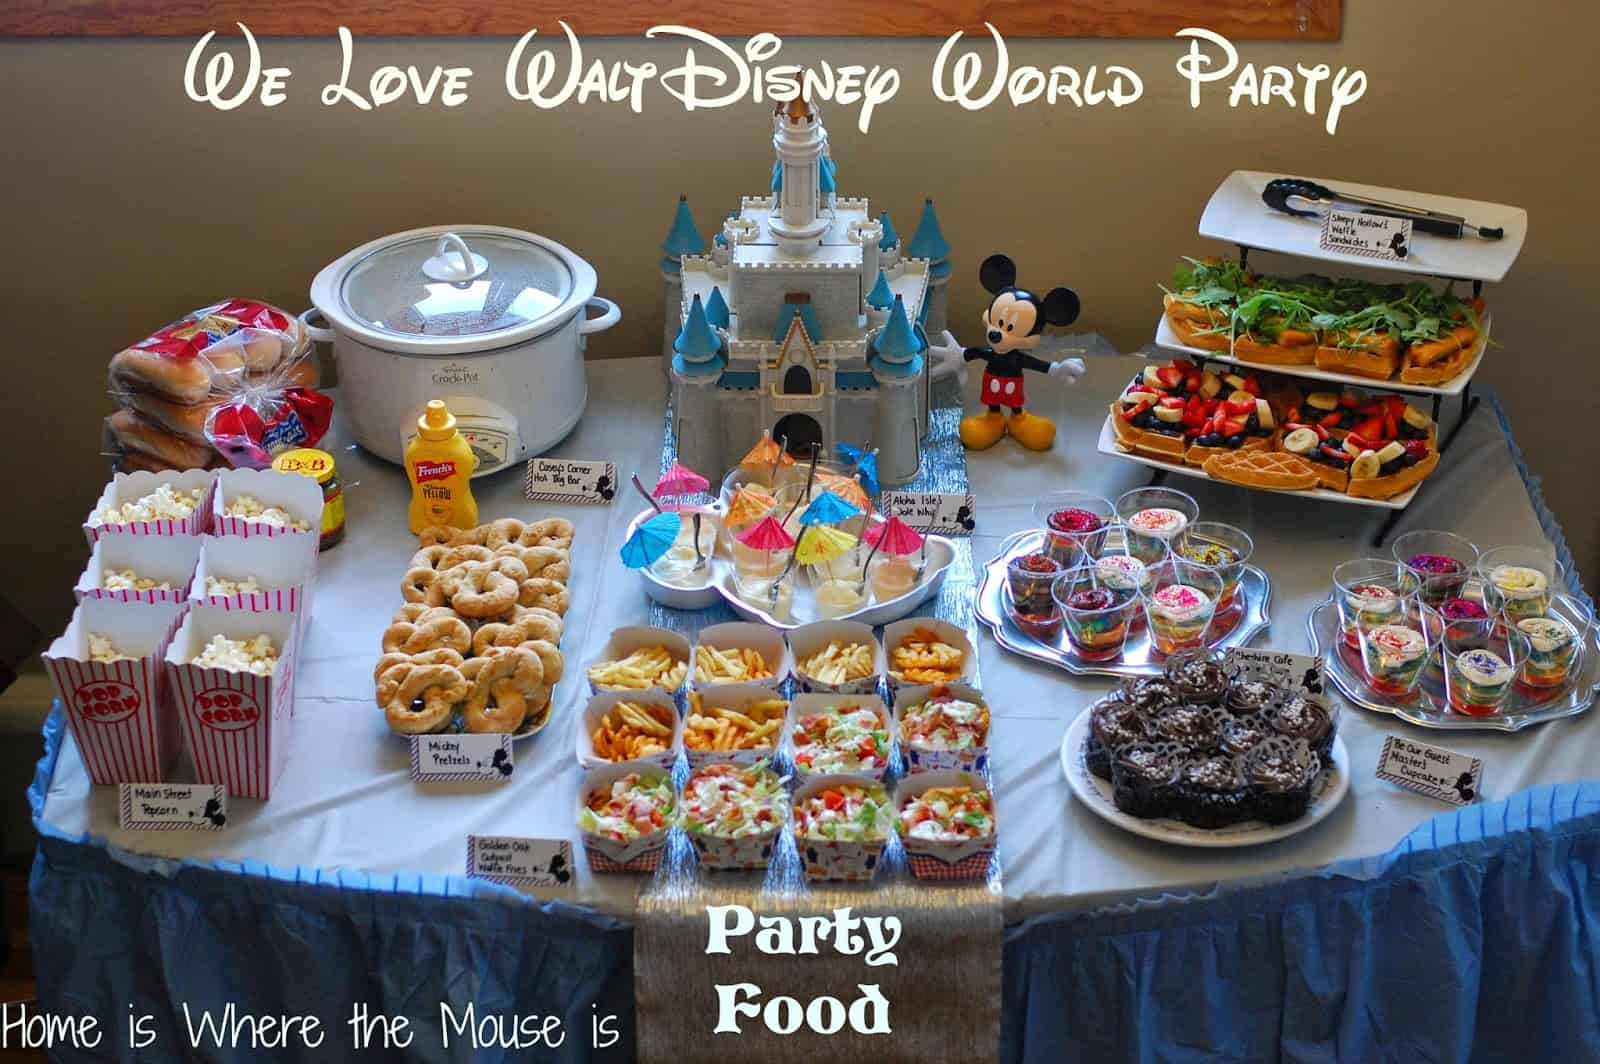 We Love Walt Disney World Party | Party Food | Adventures